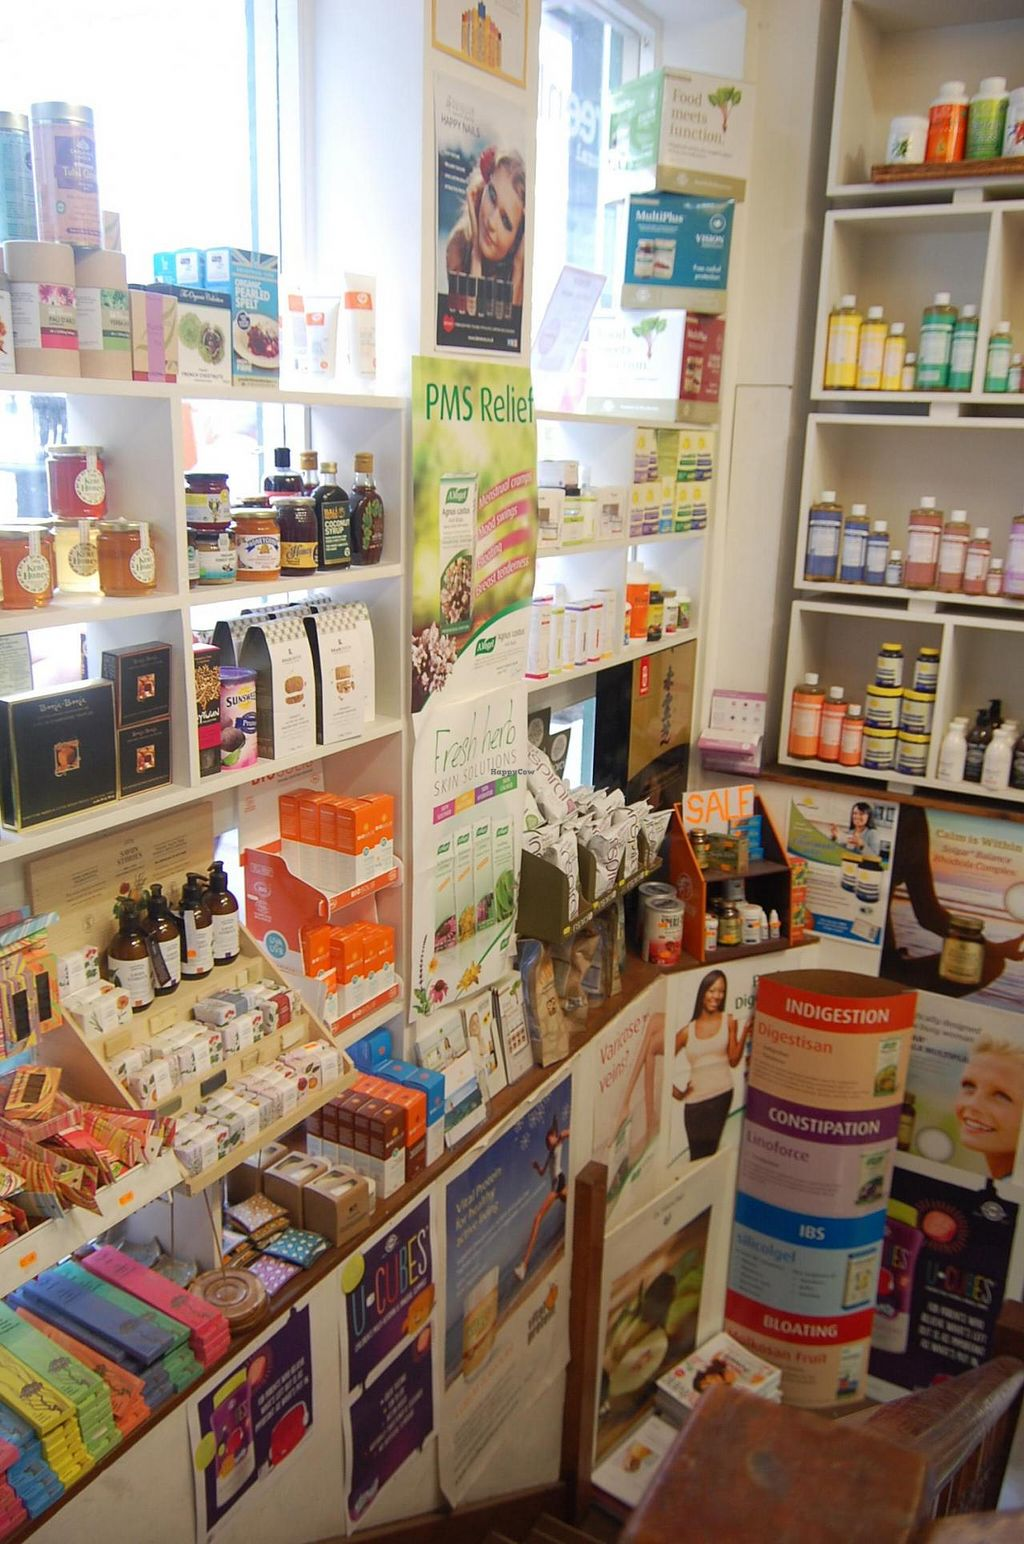 """Photo of Greenlands Wholefoods  by <a href=""""/members/profile/Clare"""">Clare</a> <br/>Stairs display <br/> June 18, 2015  - <a href='/contact/abuse/image/27314/106404'>Report</a>"""